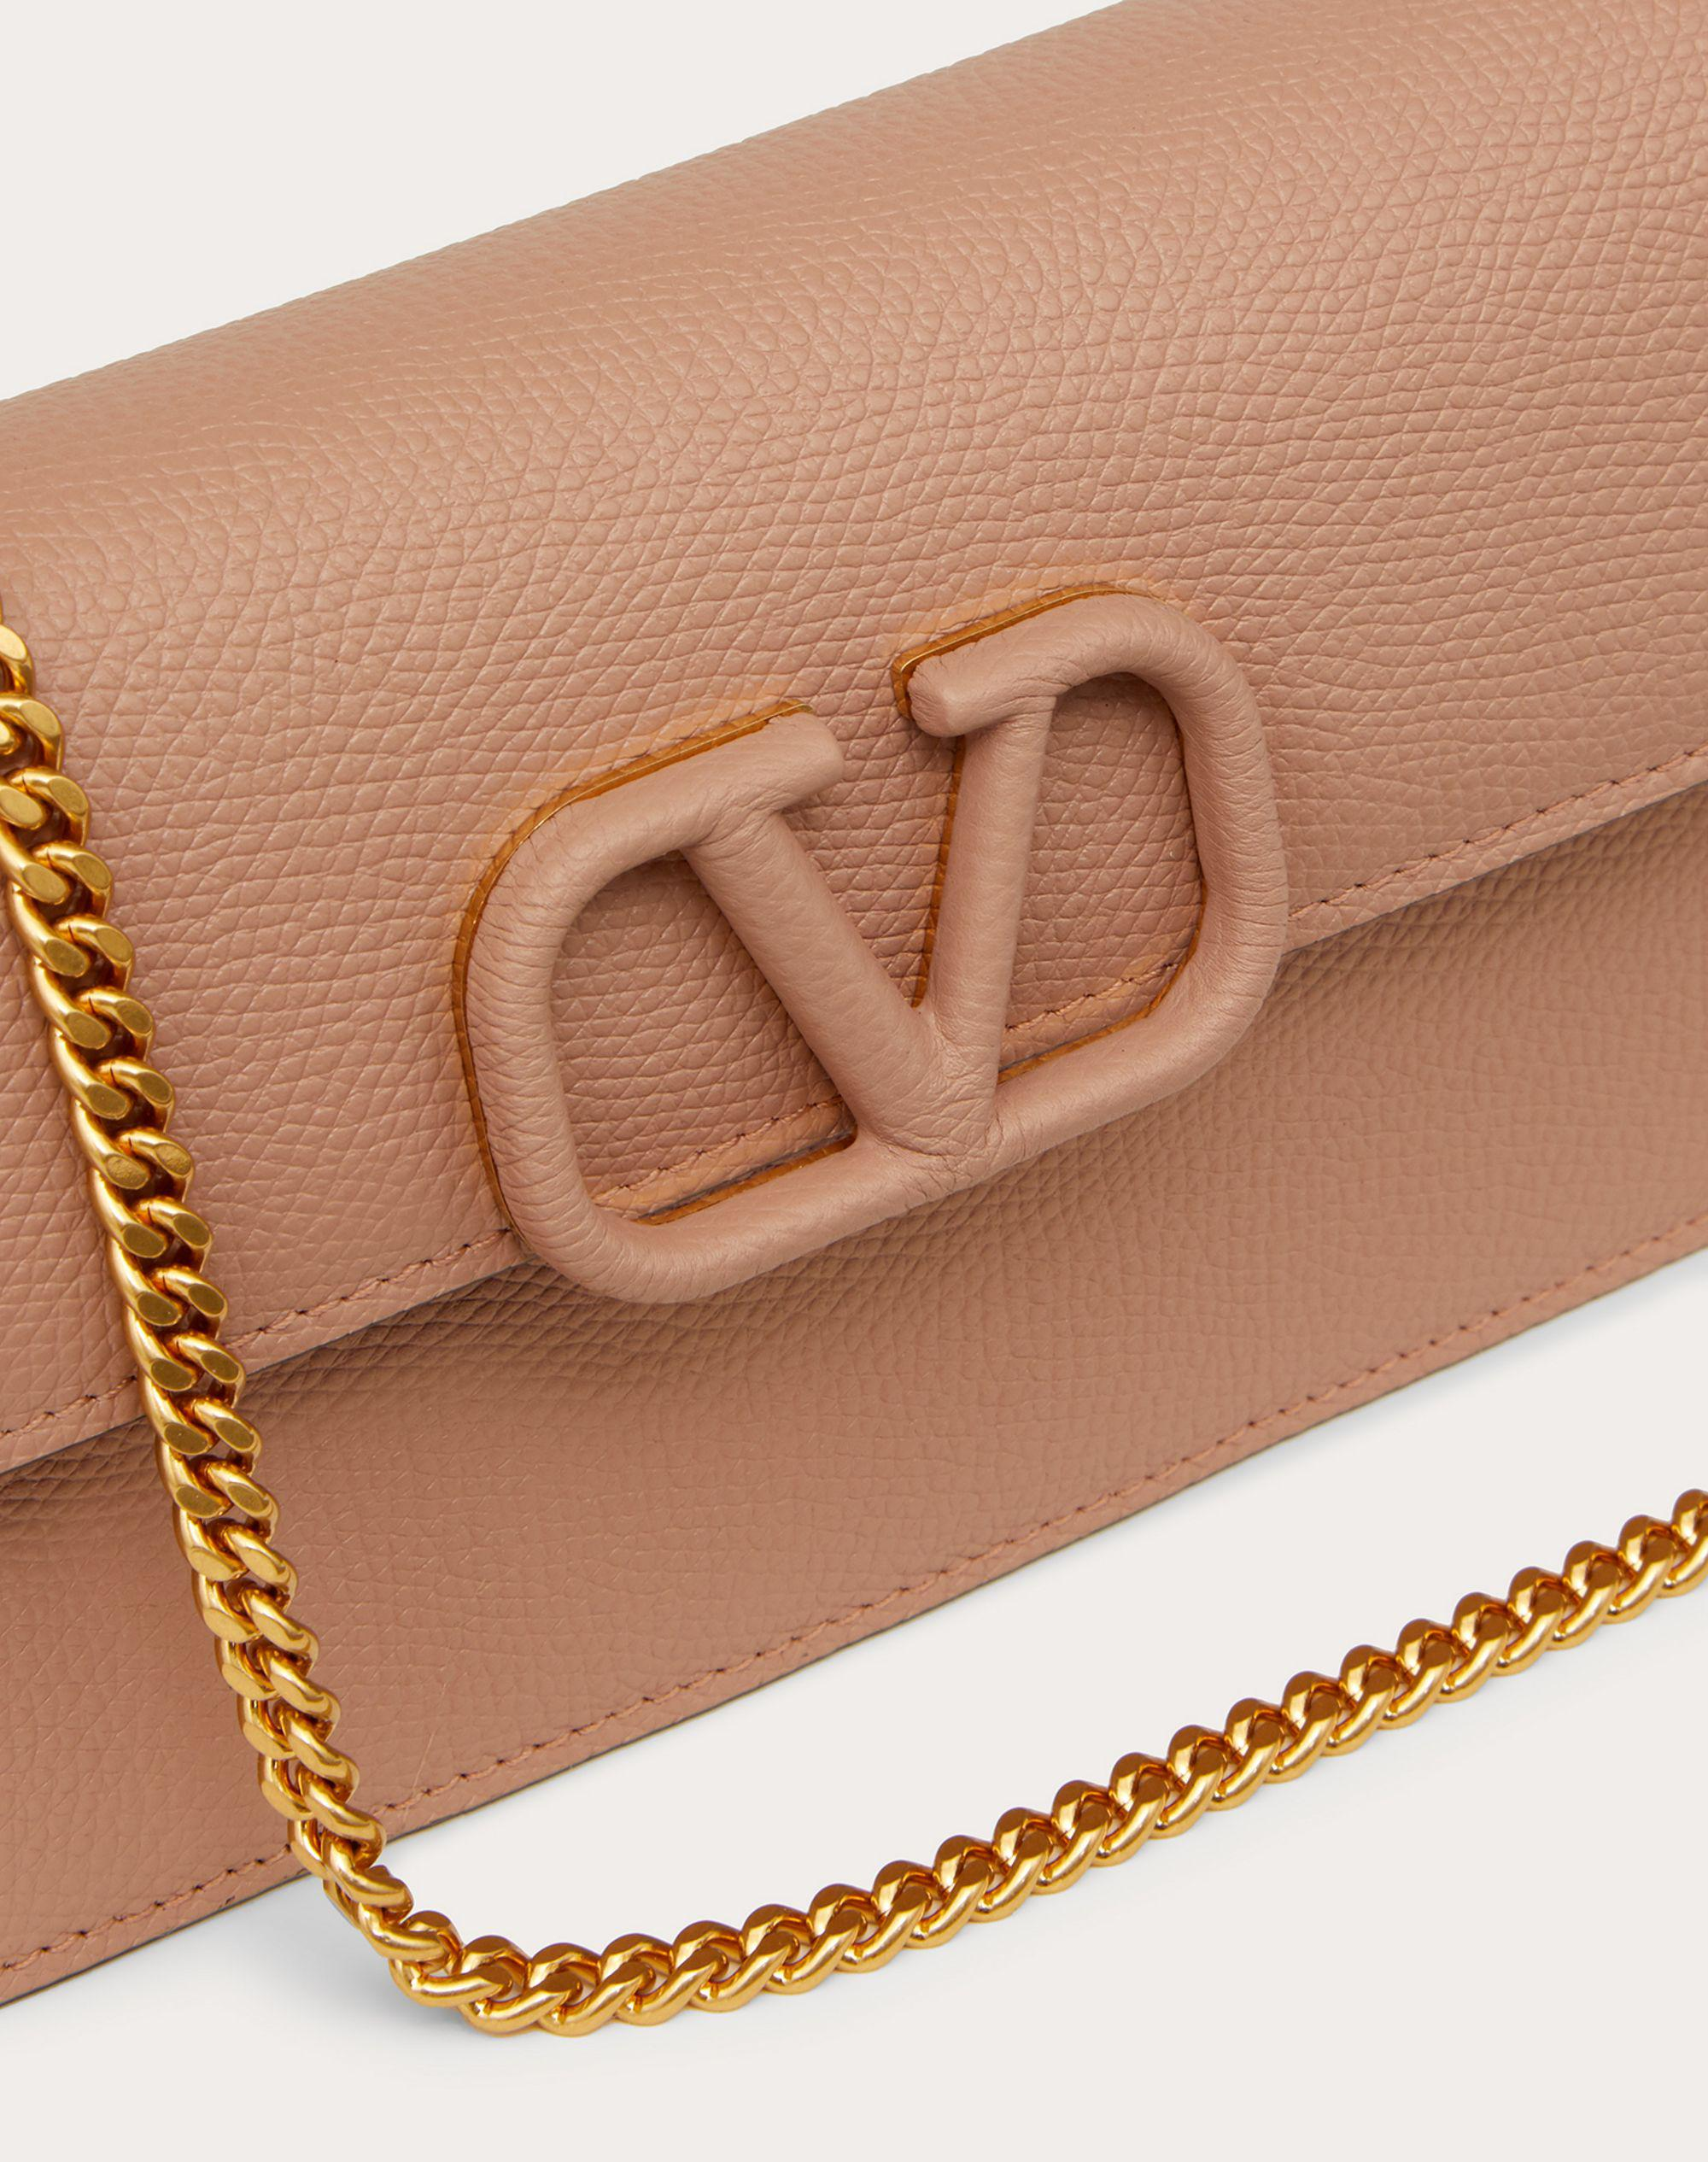 VLOGO SIGNATURE GRAINY CALFSKIN WALLET WITH CHAIN 1